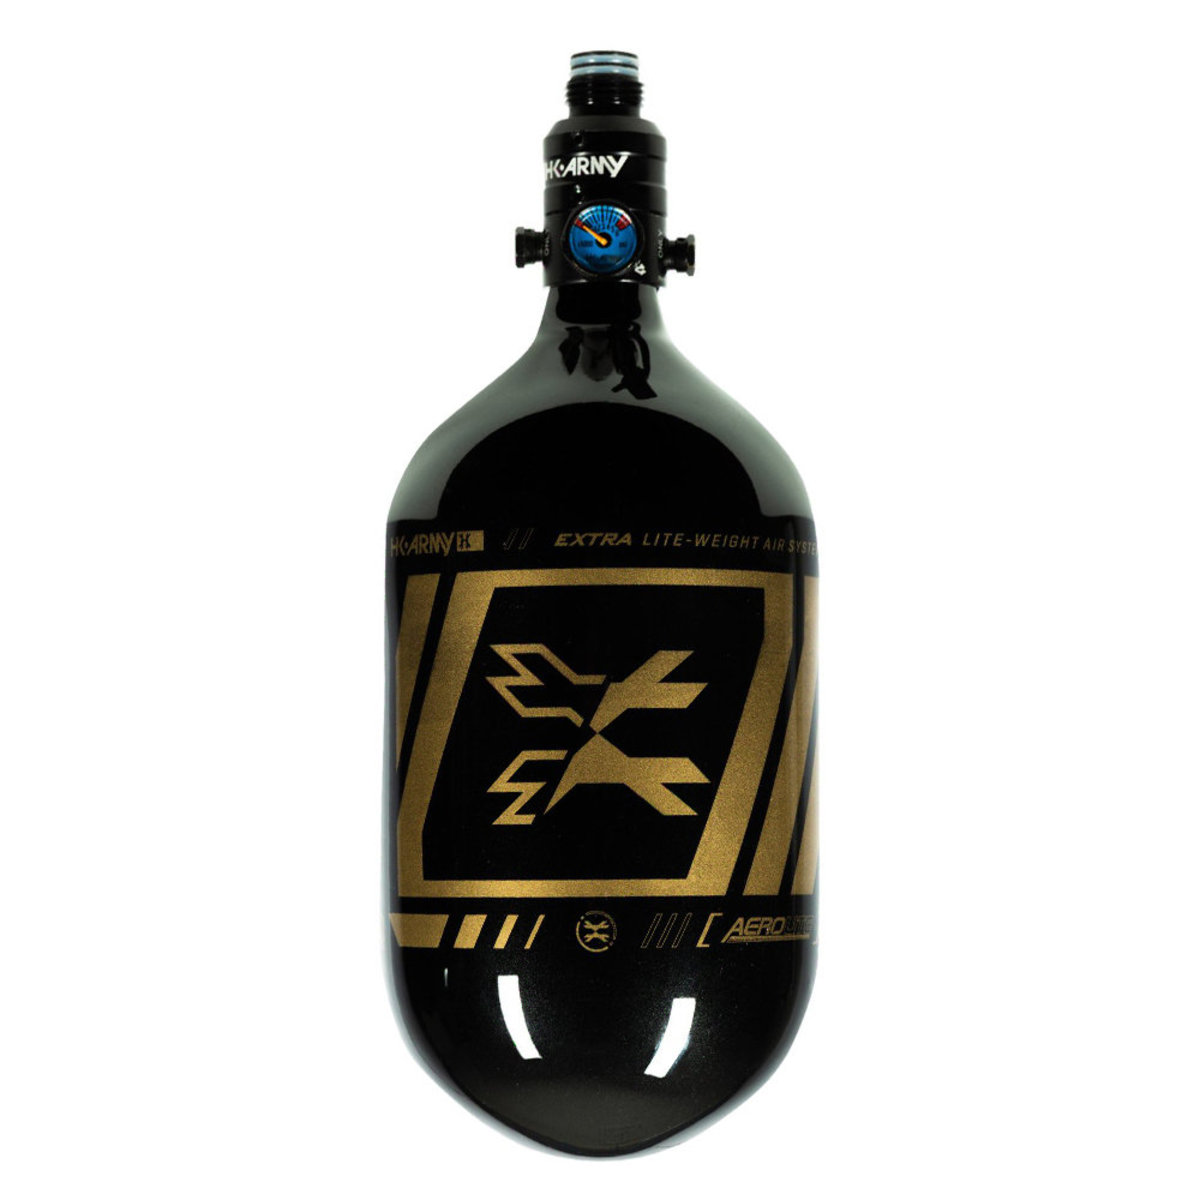 View larger image of HK Army SLASH 68/4500 Extra Lite Paintball Compressed Air Tank w/Pro Reg